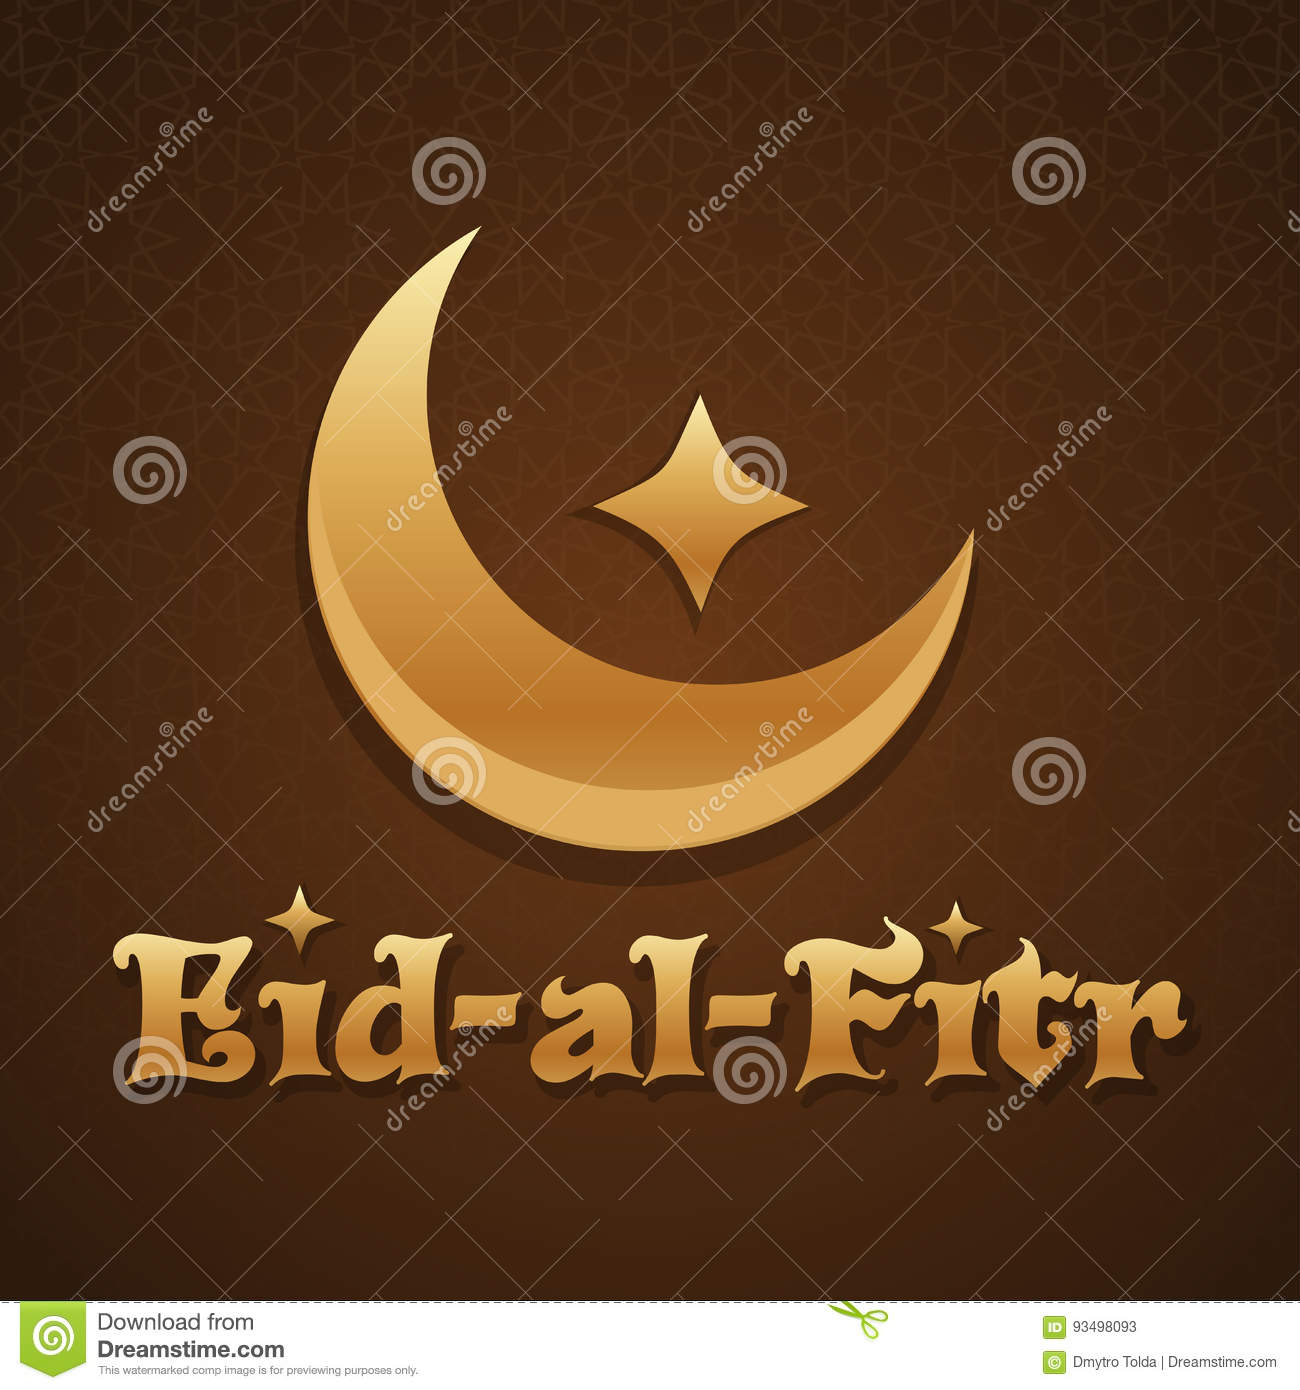 Islamic greeting card template eid al fitr stock vector islamic greeting card template eid al fitr kristyandbryce Image collections